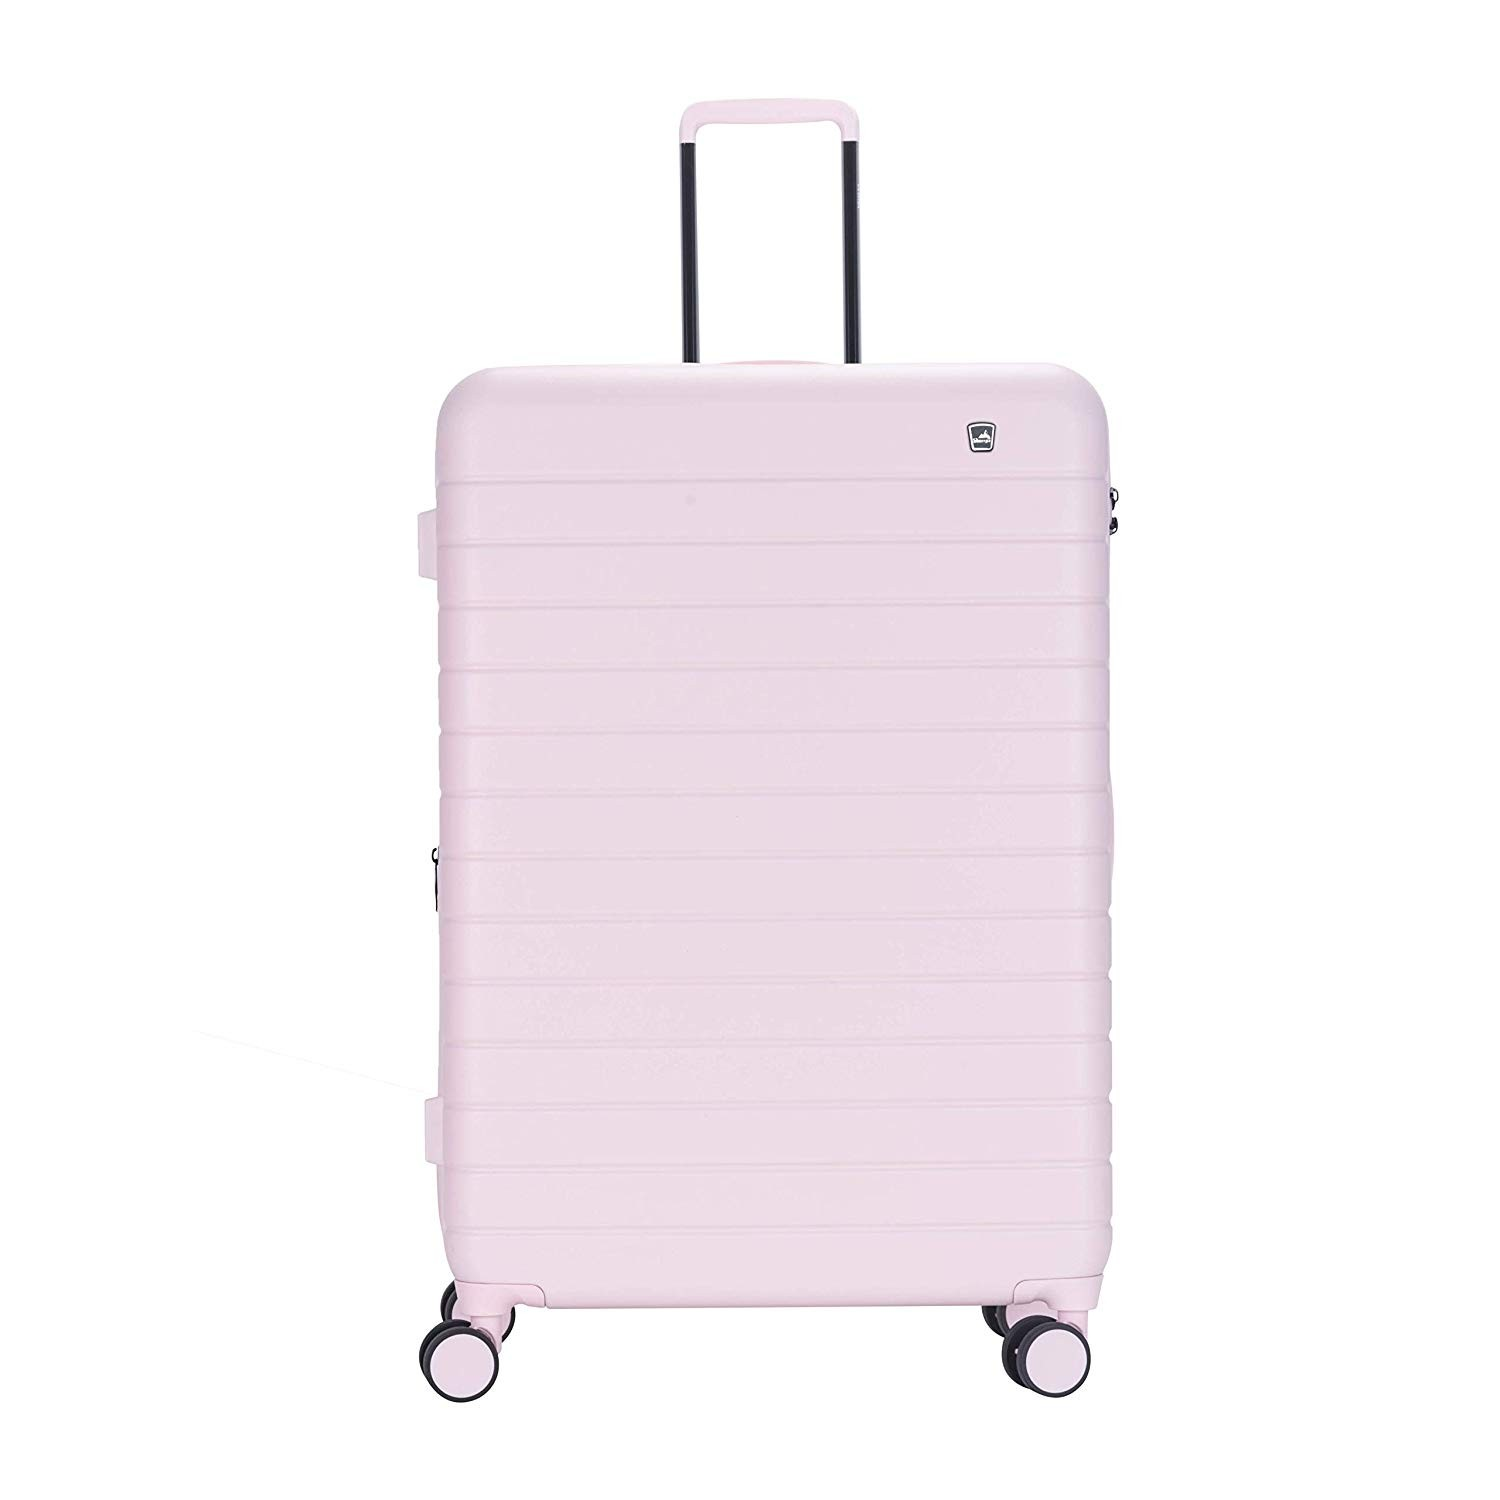 Sherrpa Destiny Luggage Hardside Lightweight Expandable Suitcase Spinner 29in